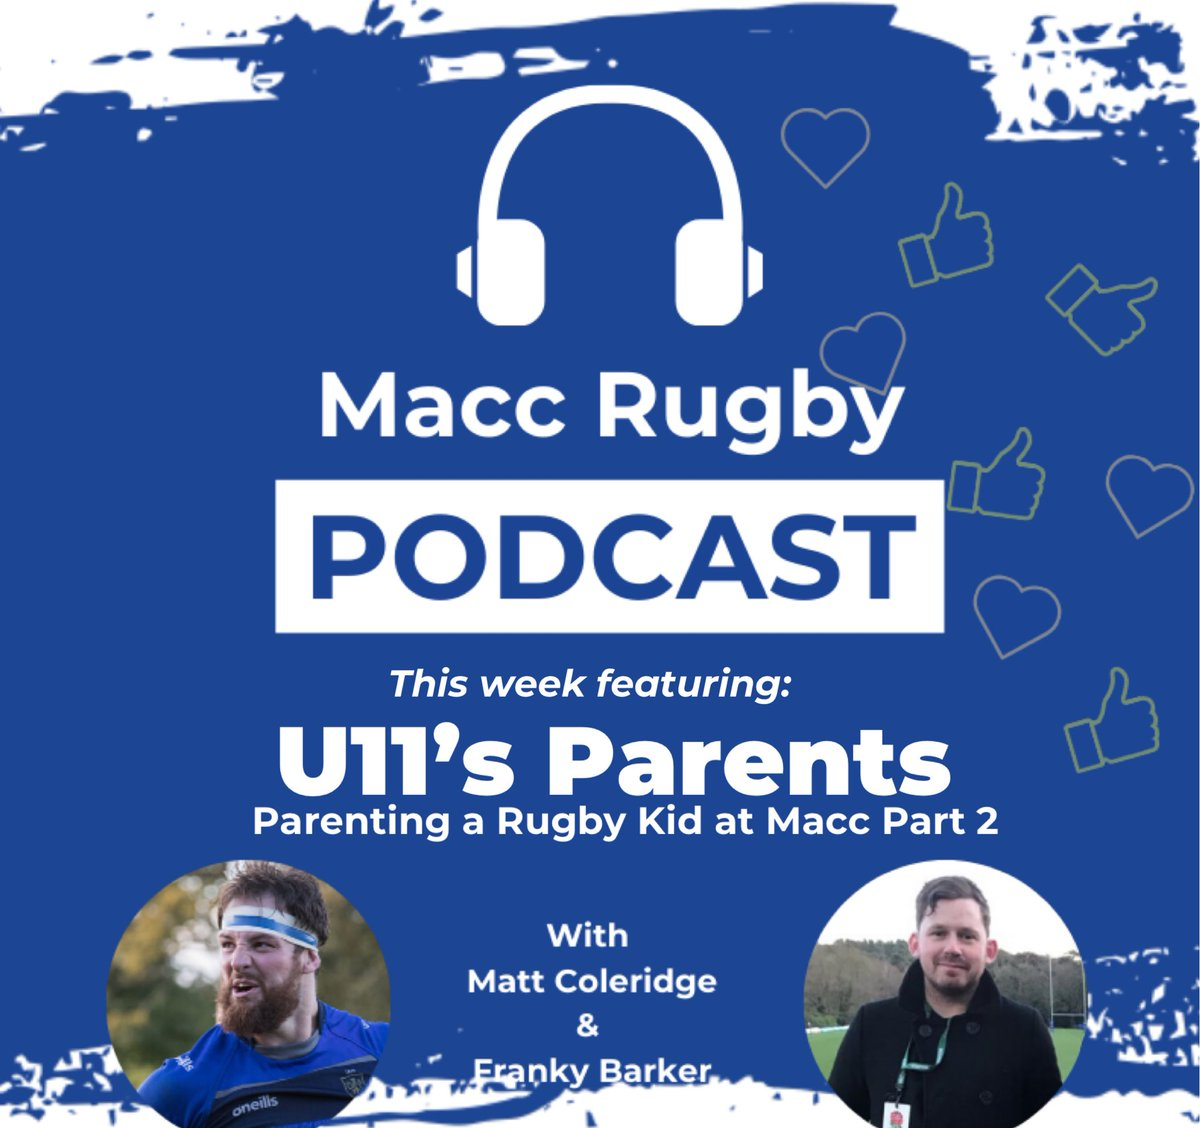 test Twitter Media - If you haven't listened to the latest episode of the #maccrugbypod yet make sure you do!! This week we caught up with the parents of the u11's and heard about how they enjoy seeing their kids enjoying rugby!! Subscribe wherever you get your pods to never miss an episode!! https://t.co/Ay1fYgqJta